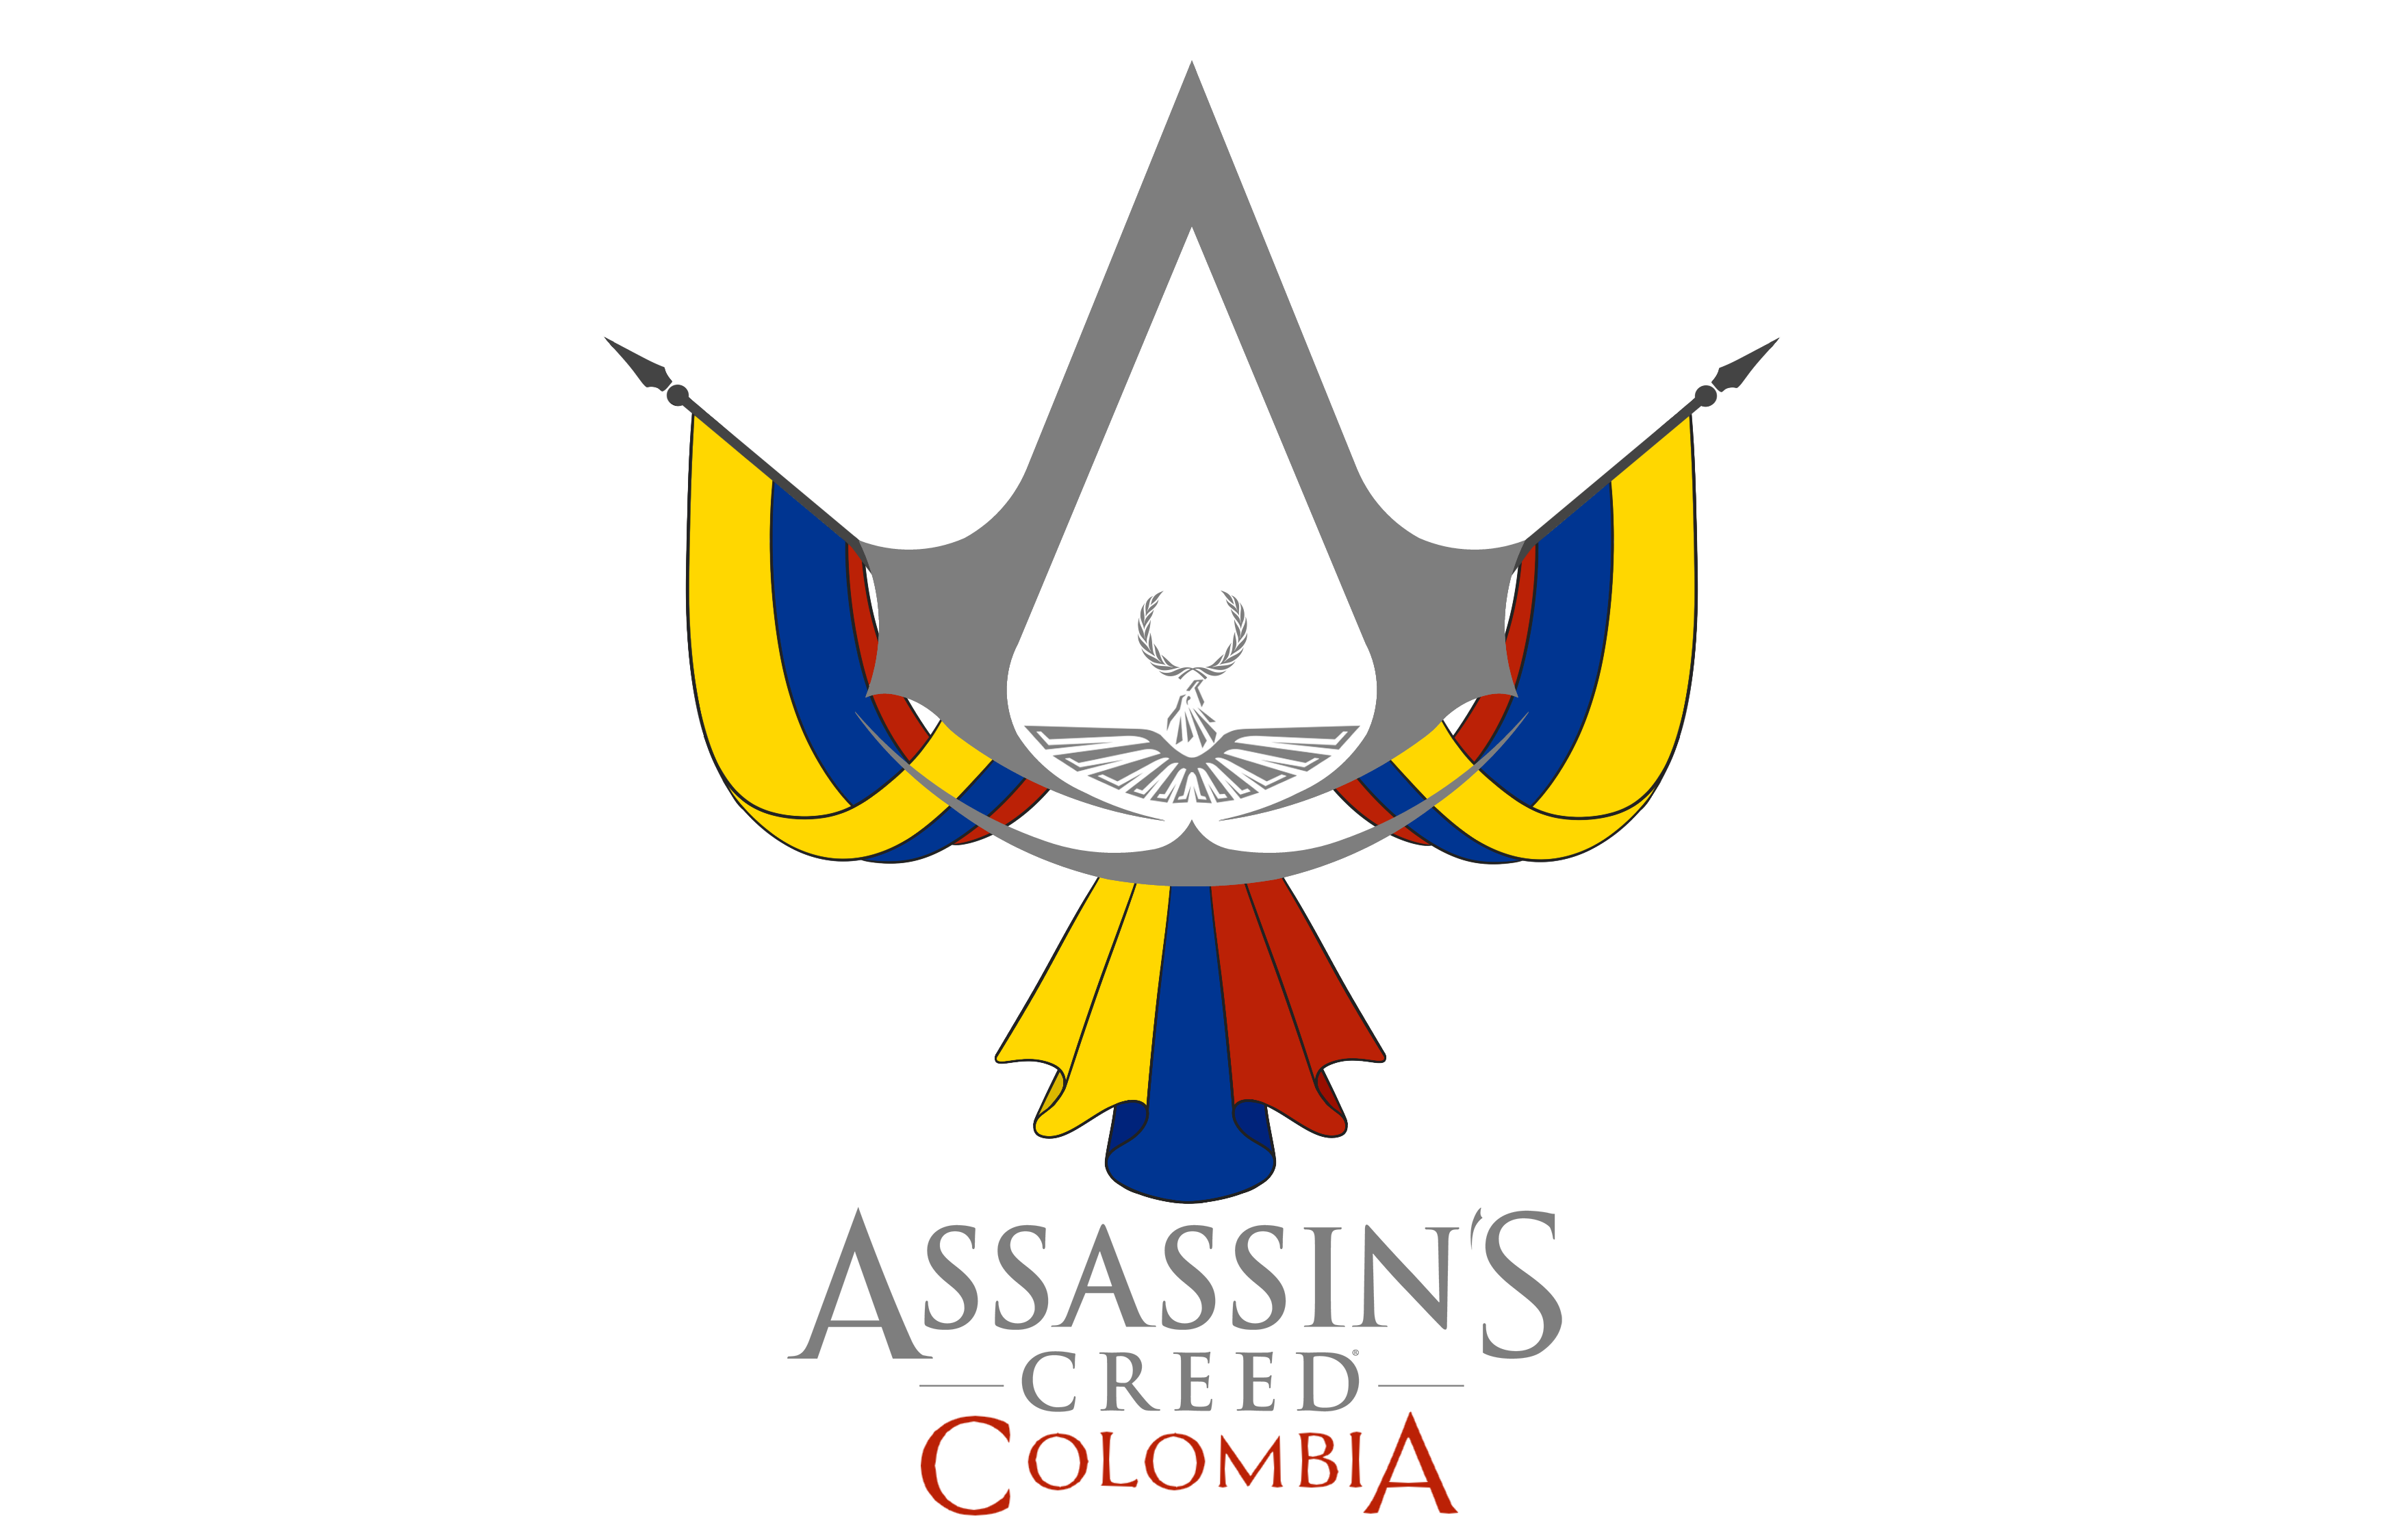 Assassin'-s Creed Emblem by DecanAndersen on DeviantArt